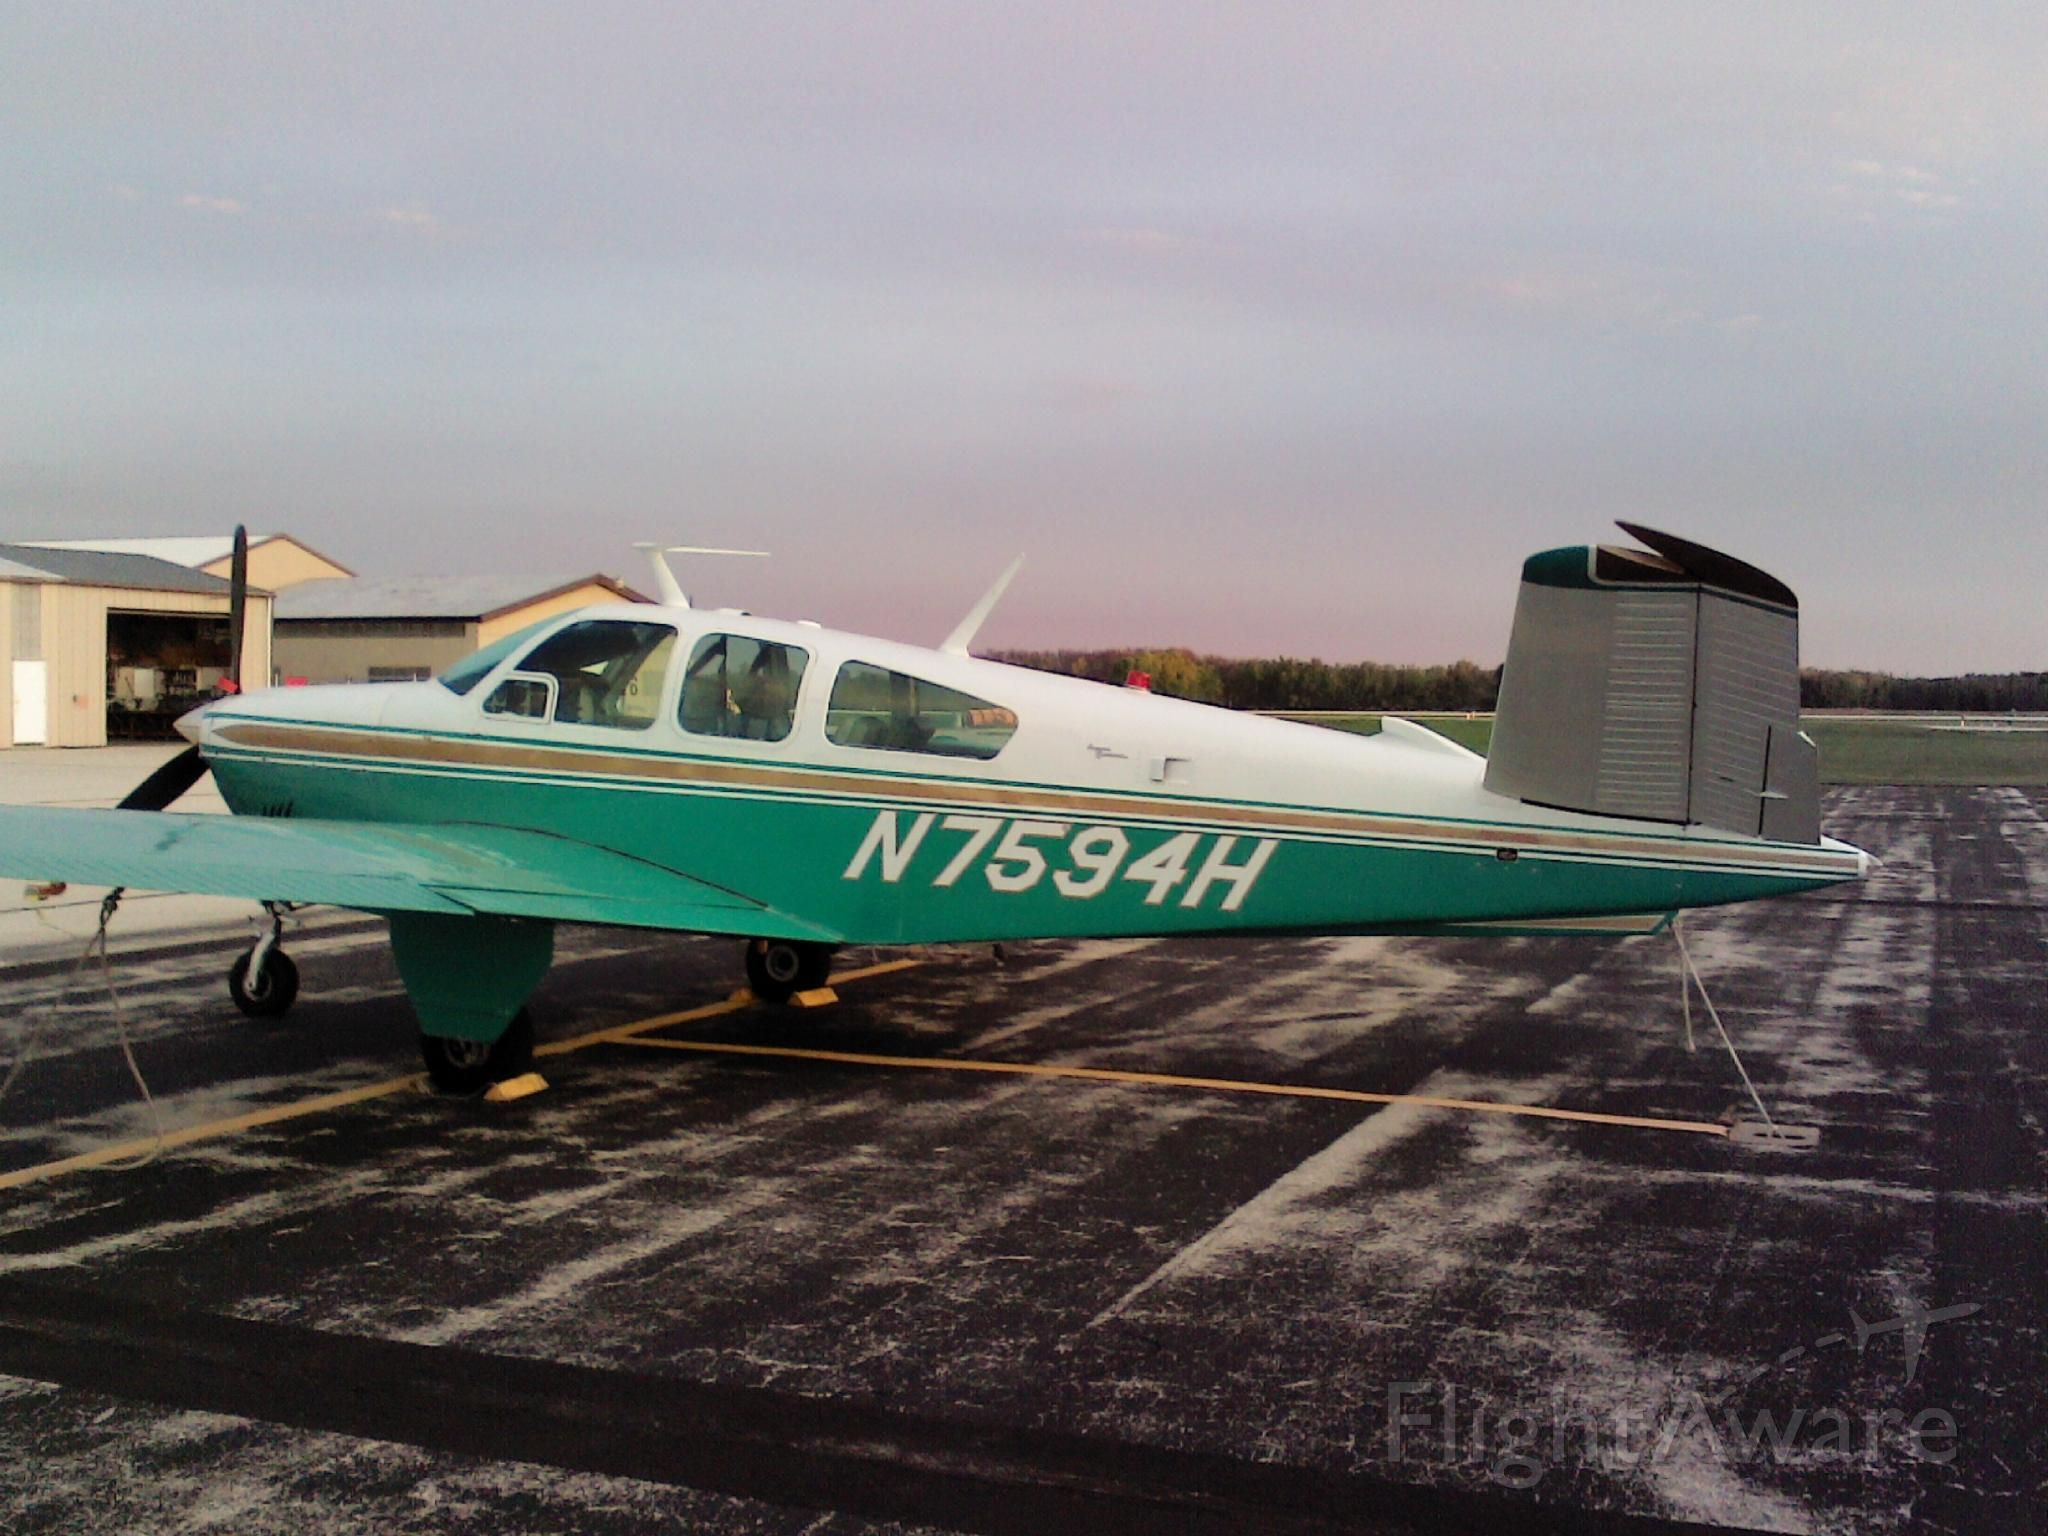 Beechcraft 35 Bonanza (N7594H) - In the early morning at KSUE ... Sturgeon Bay, Wisconsin was this lovely Beach.